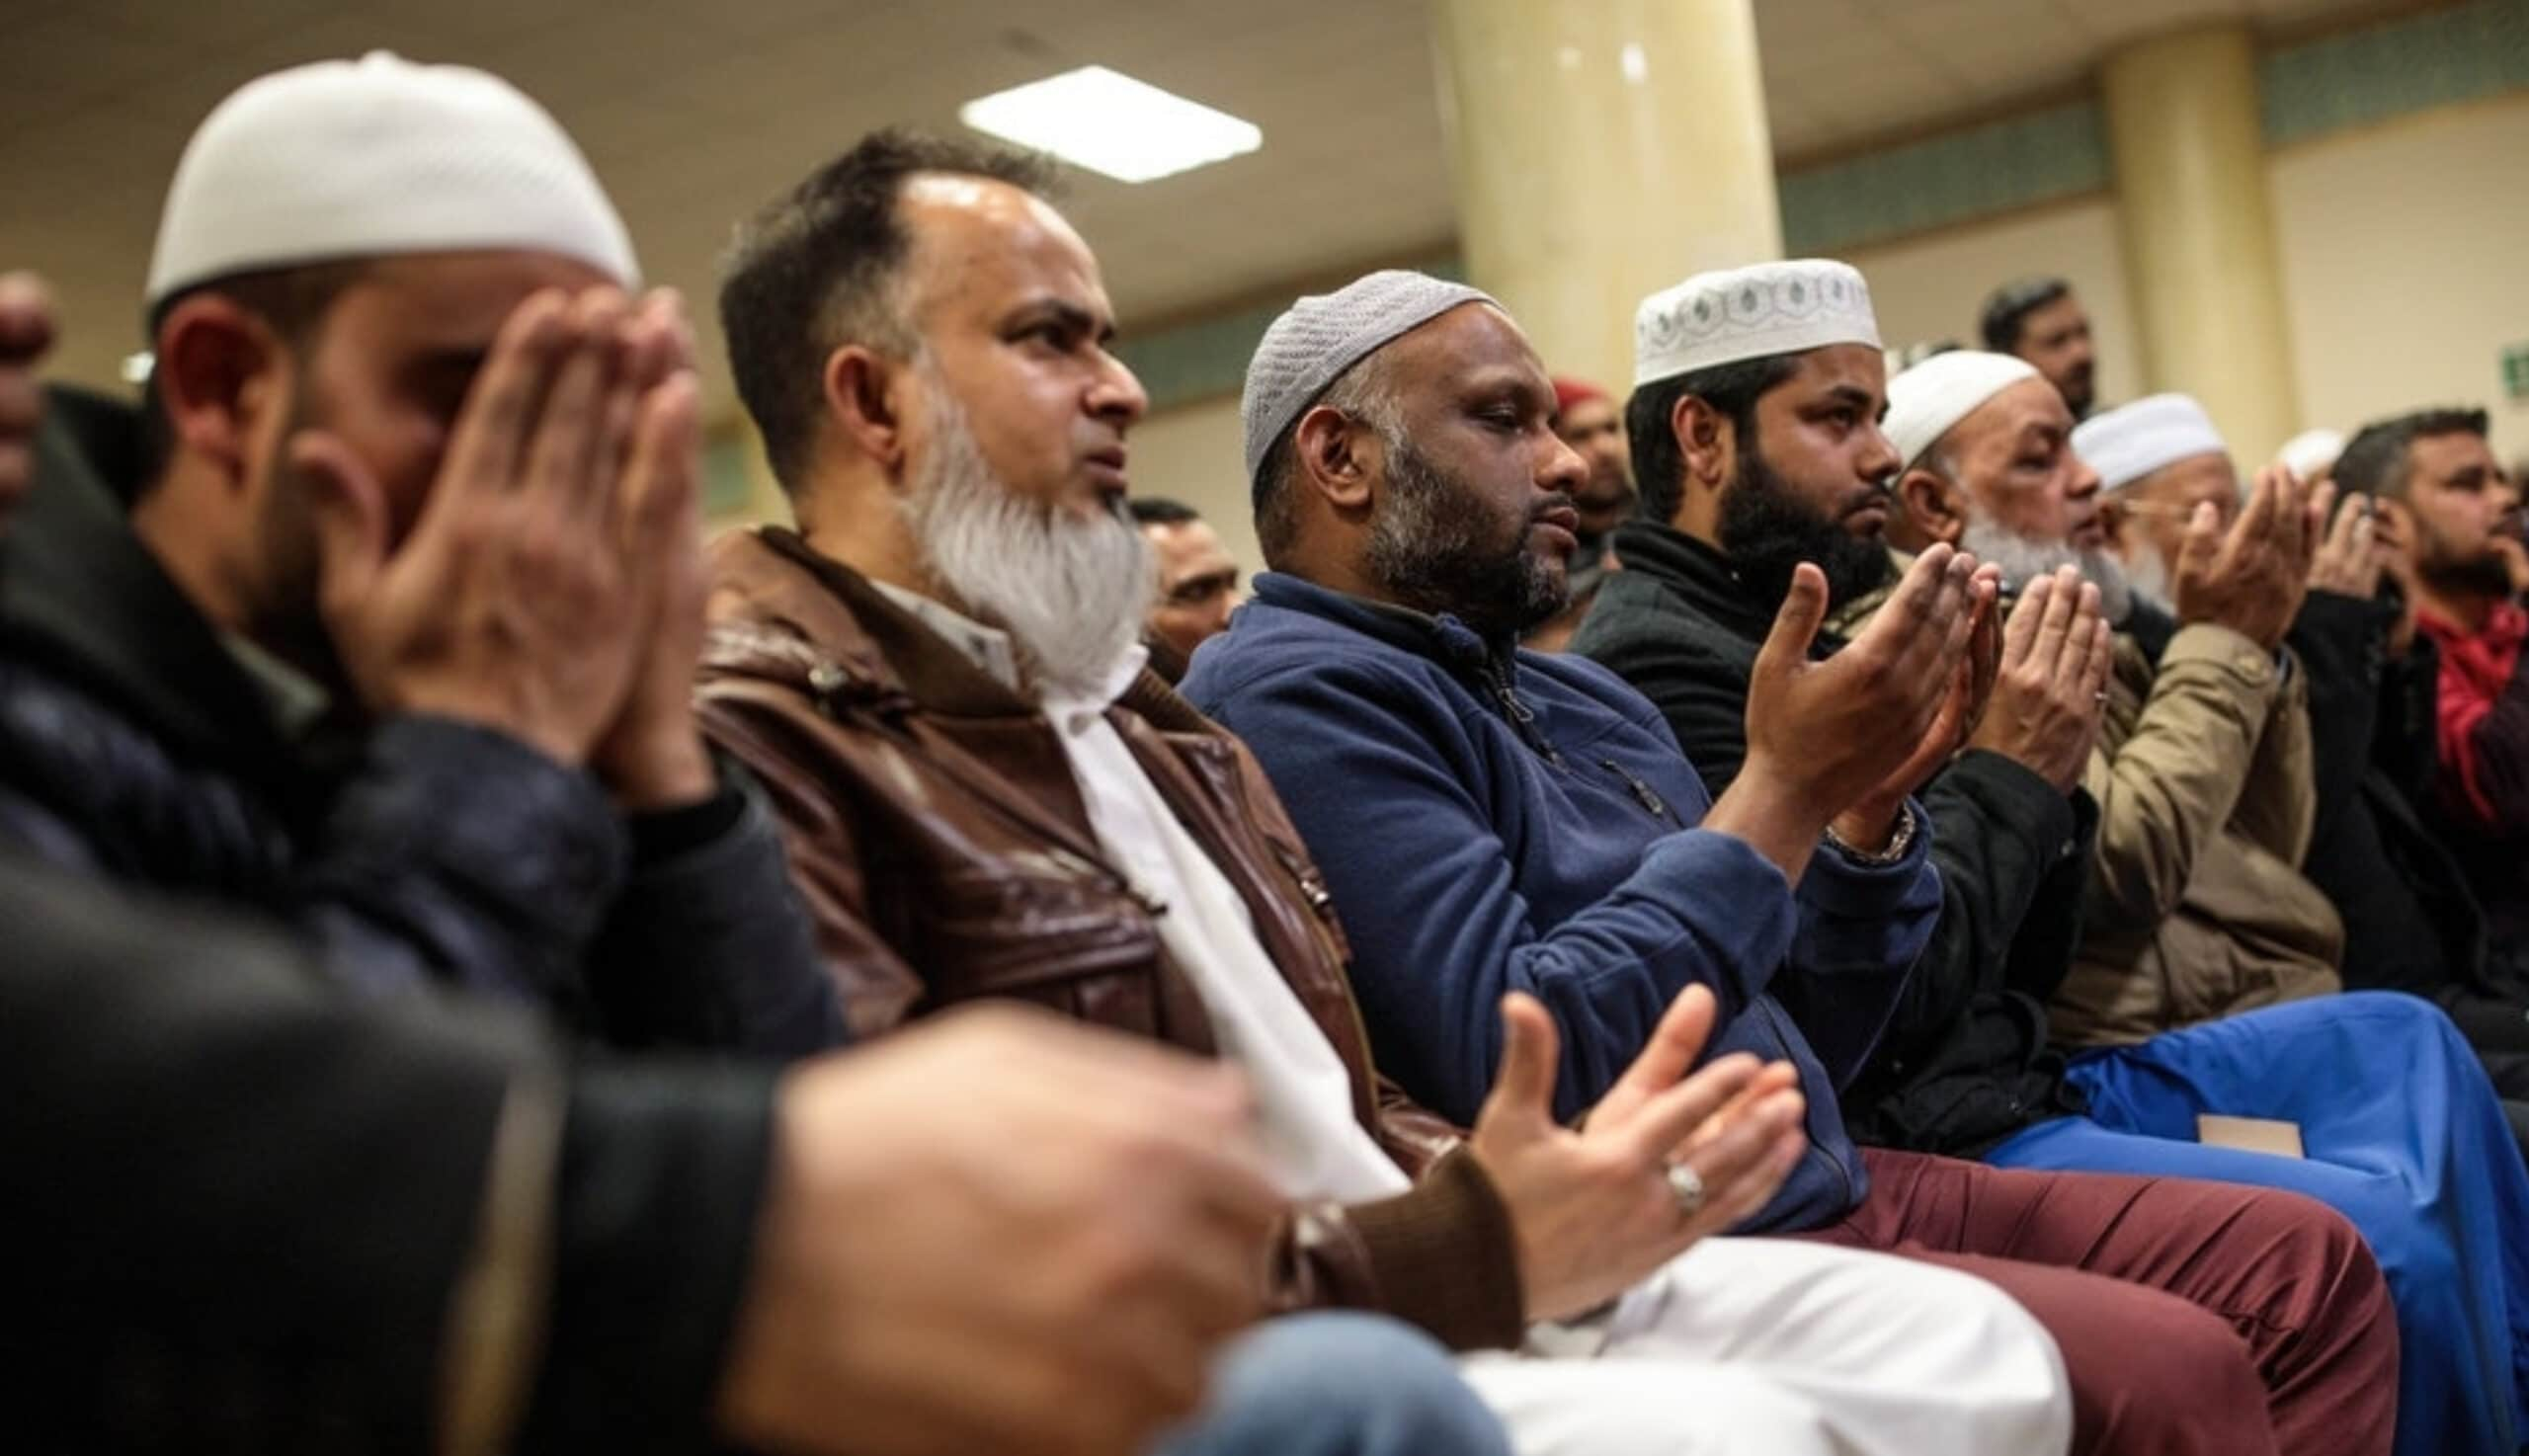 East London Muslims at prayer - Jack Taylor